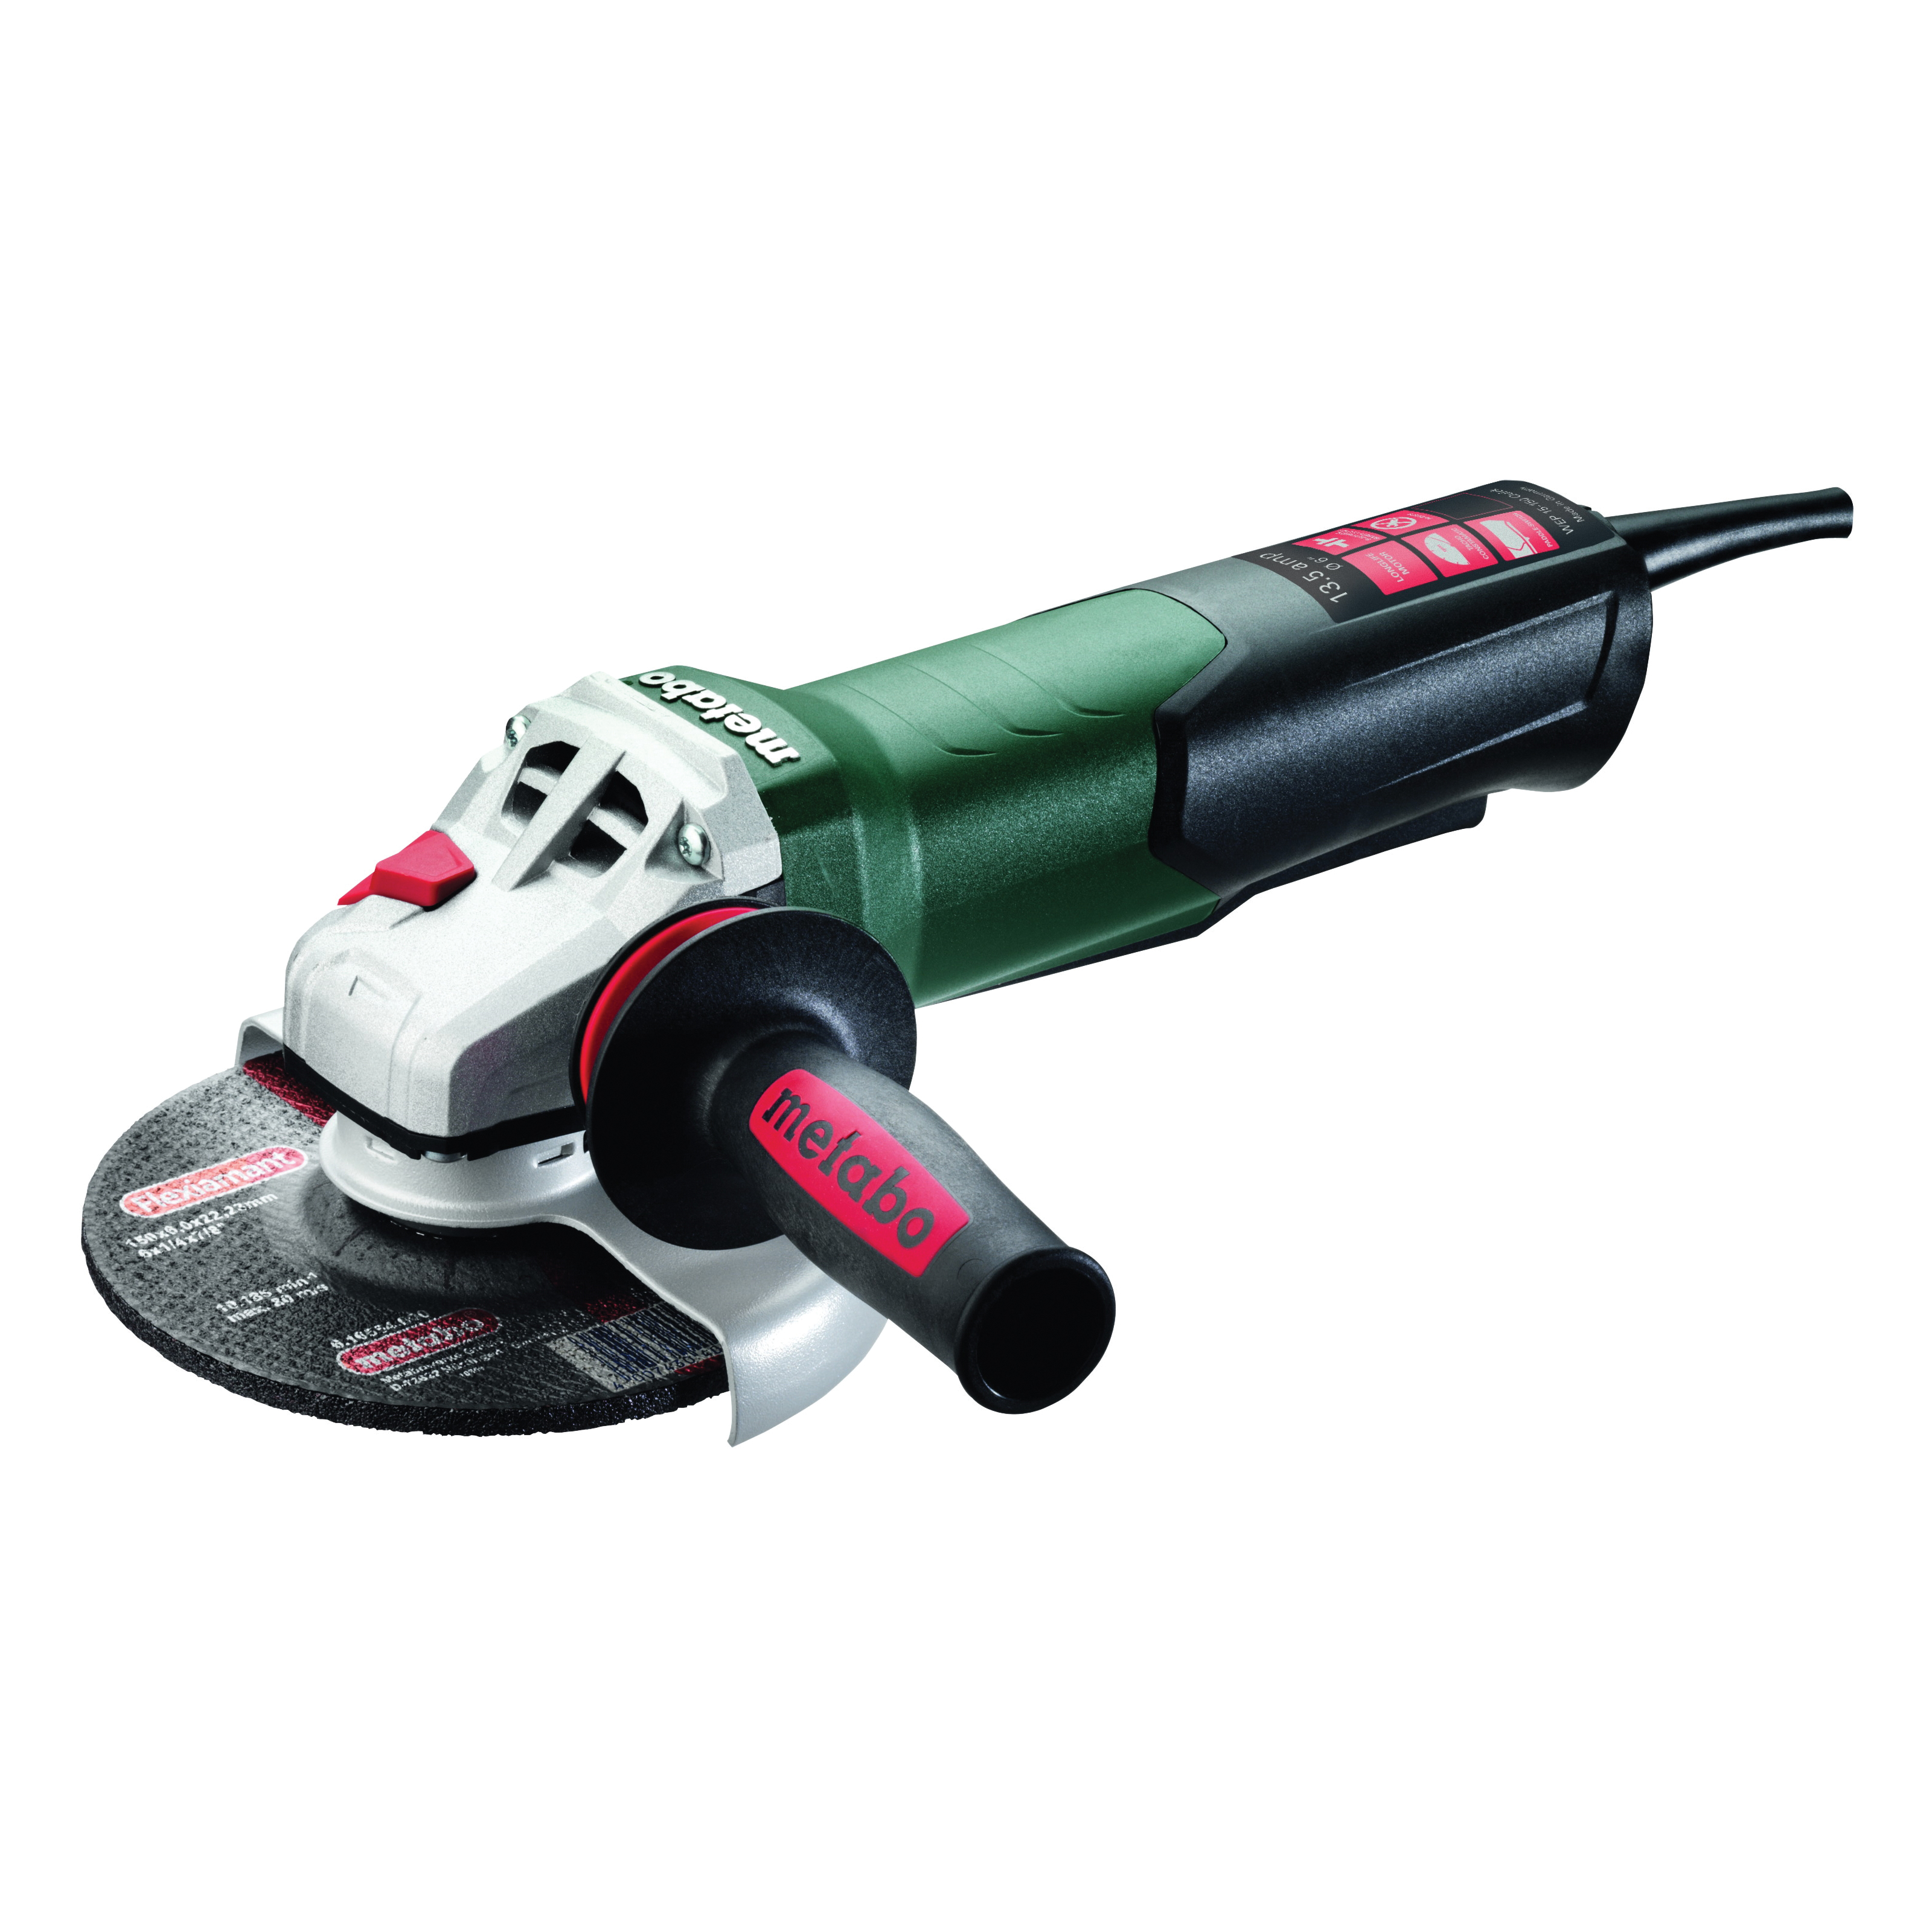 metabo® 600488420 Electric Angle Grinder, 6 in Dia Wheel, 5/8-11 UNC Arbor/Shank, 110 to 120 VAC